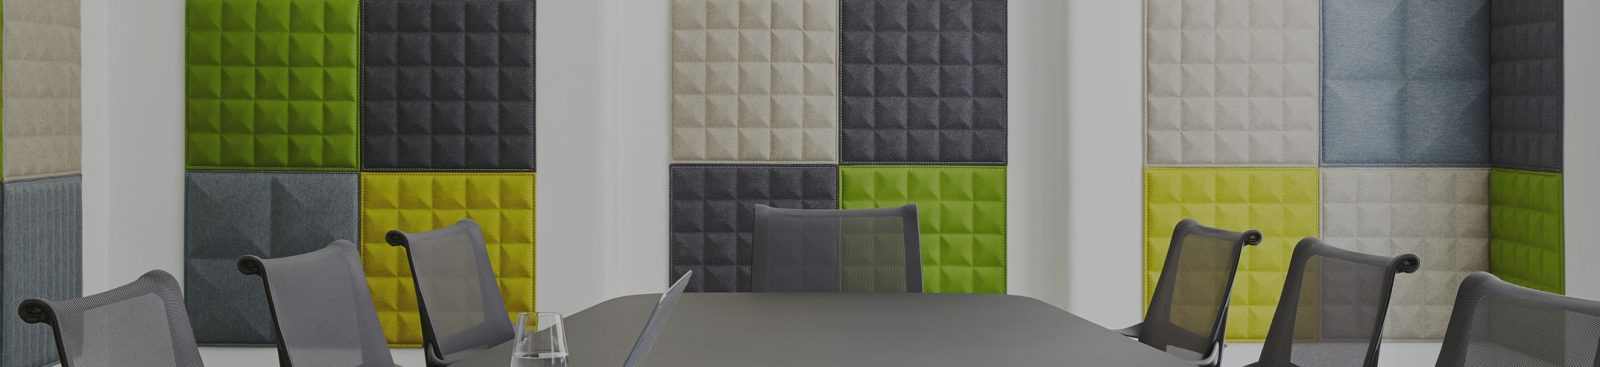 Acoustic Panels and clever noise reducing ideas image